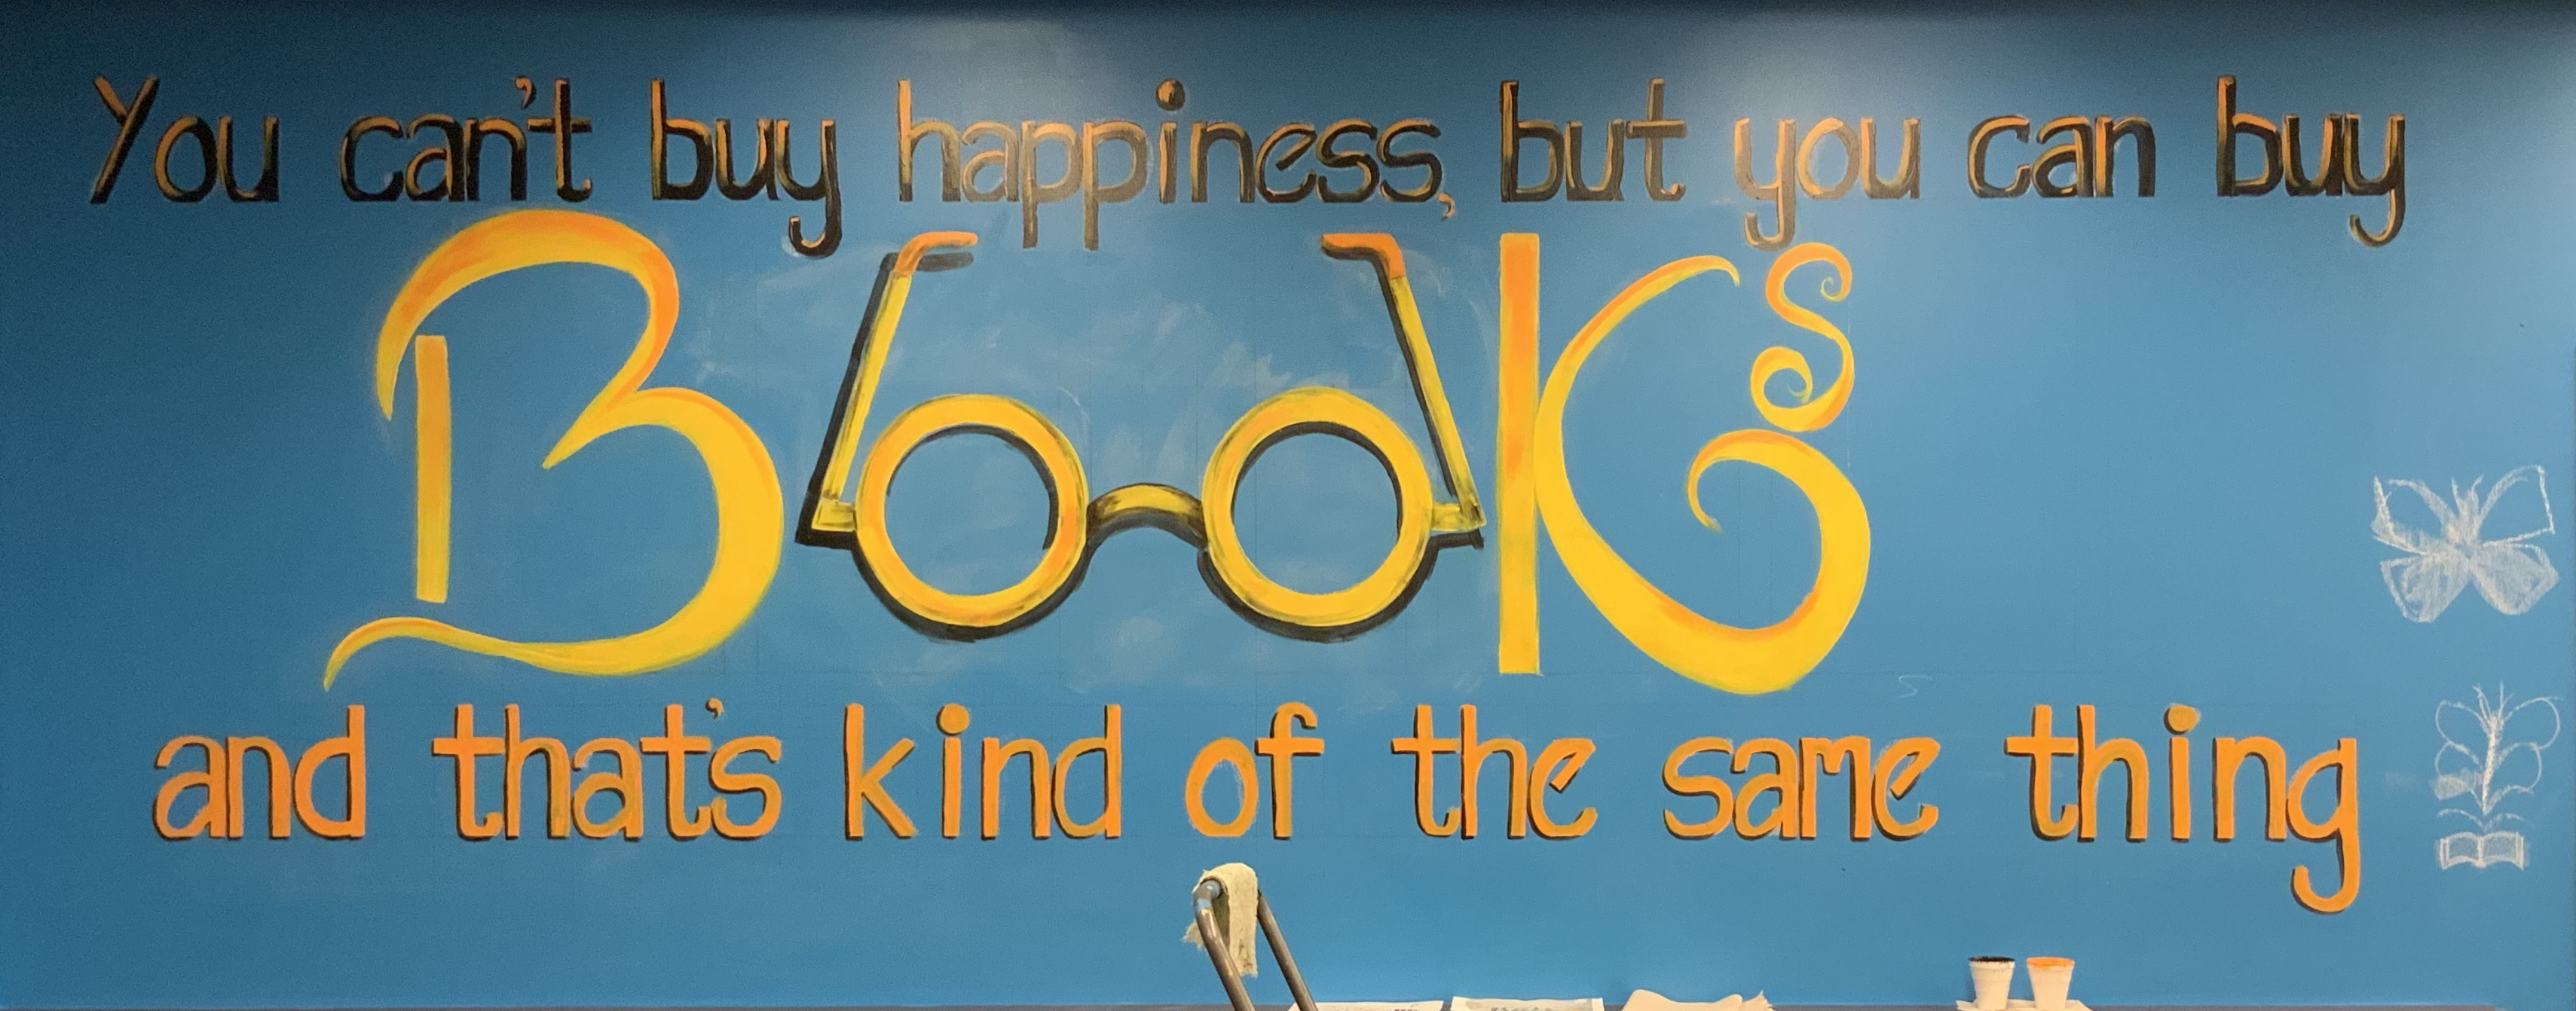 Buy Books Quote Wall